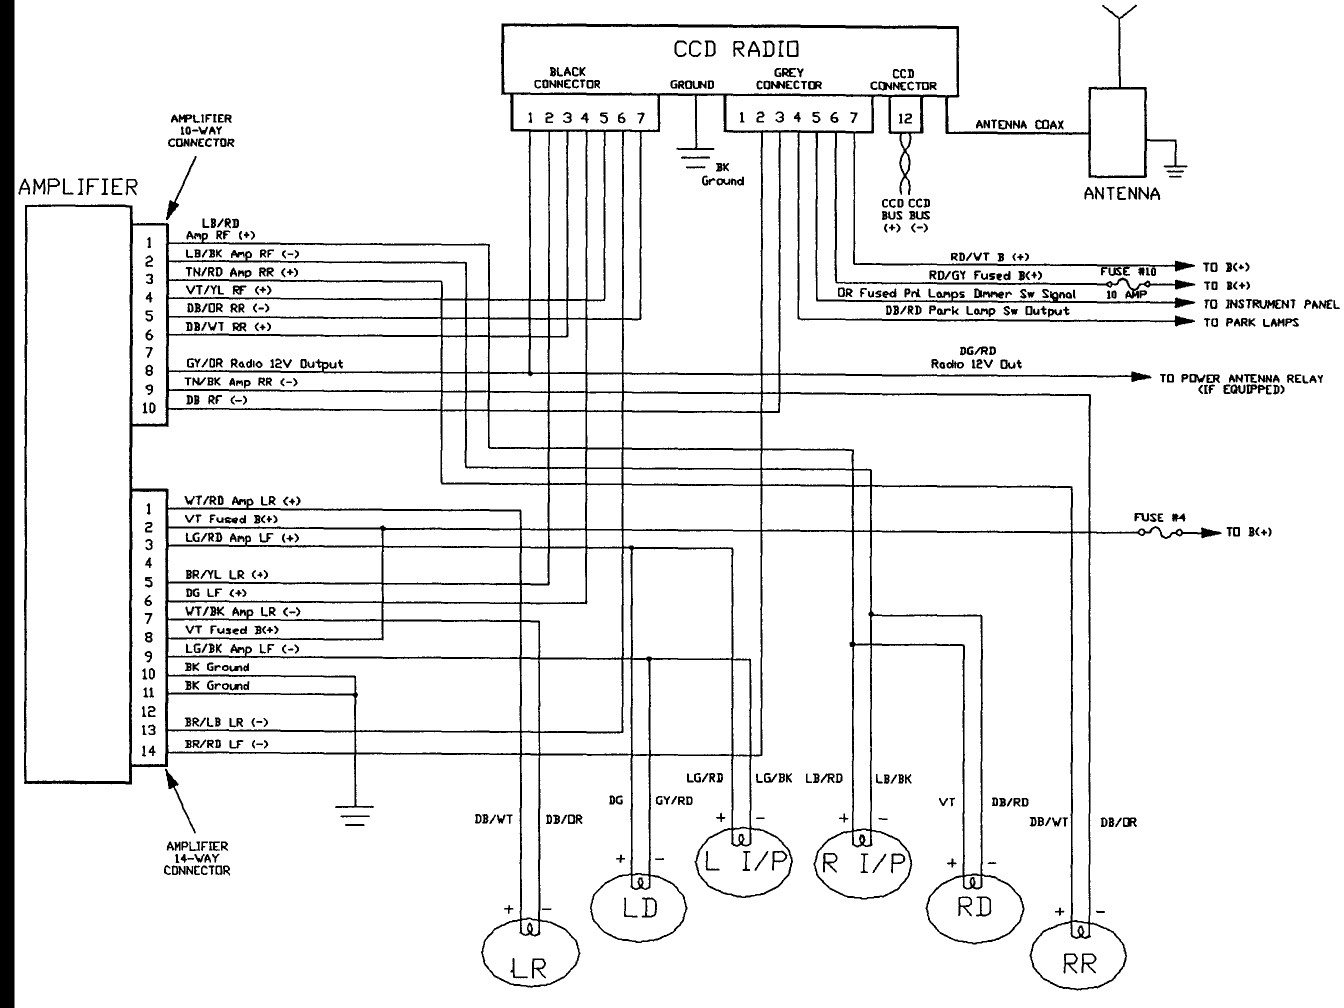 [DIAGRAM] 2001 Jeep Cherokee Radio Wiring Diagram FULL